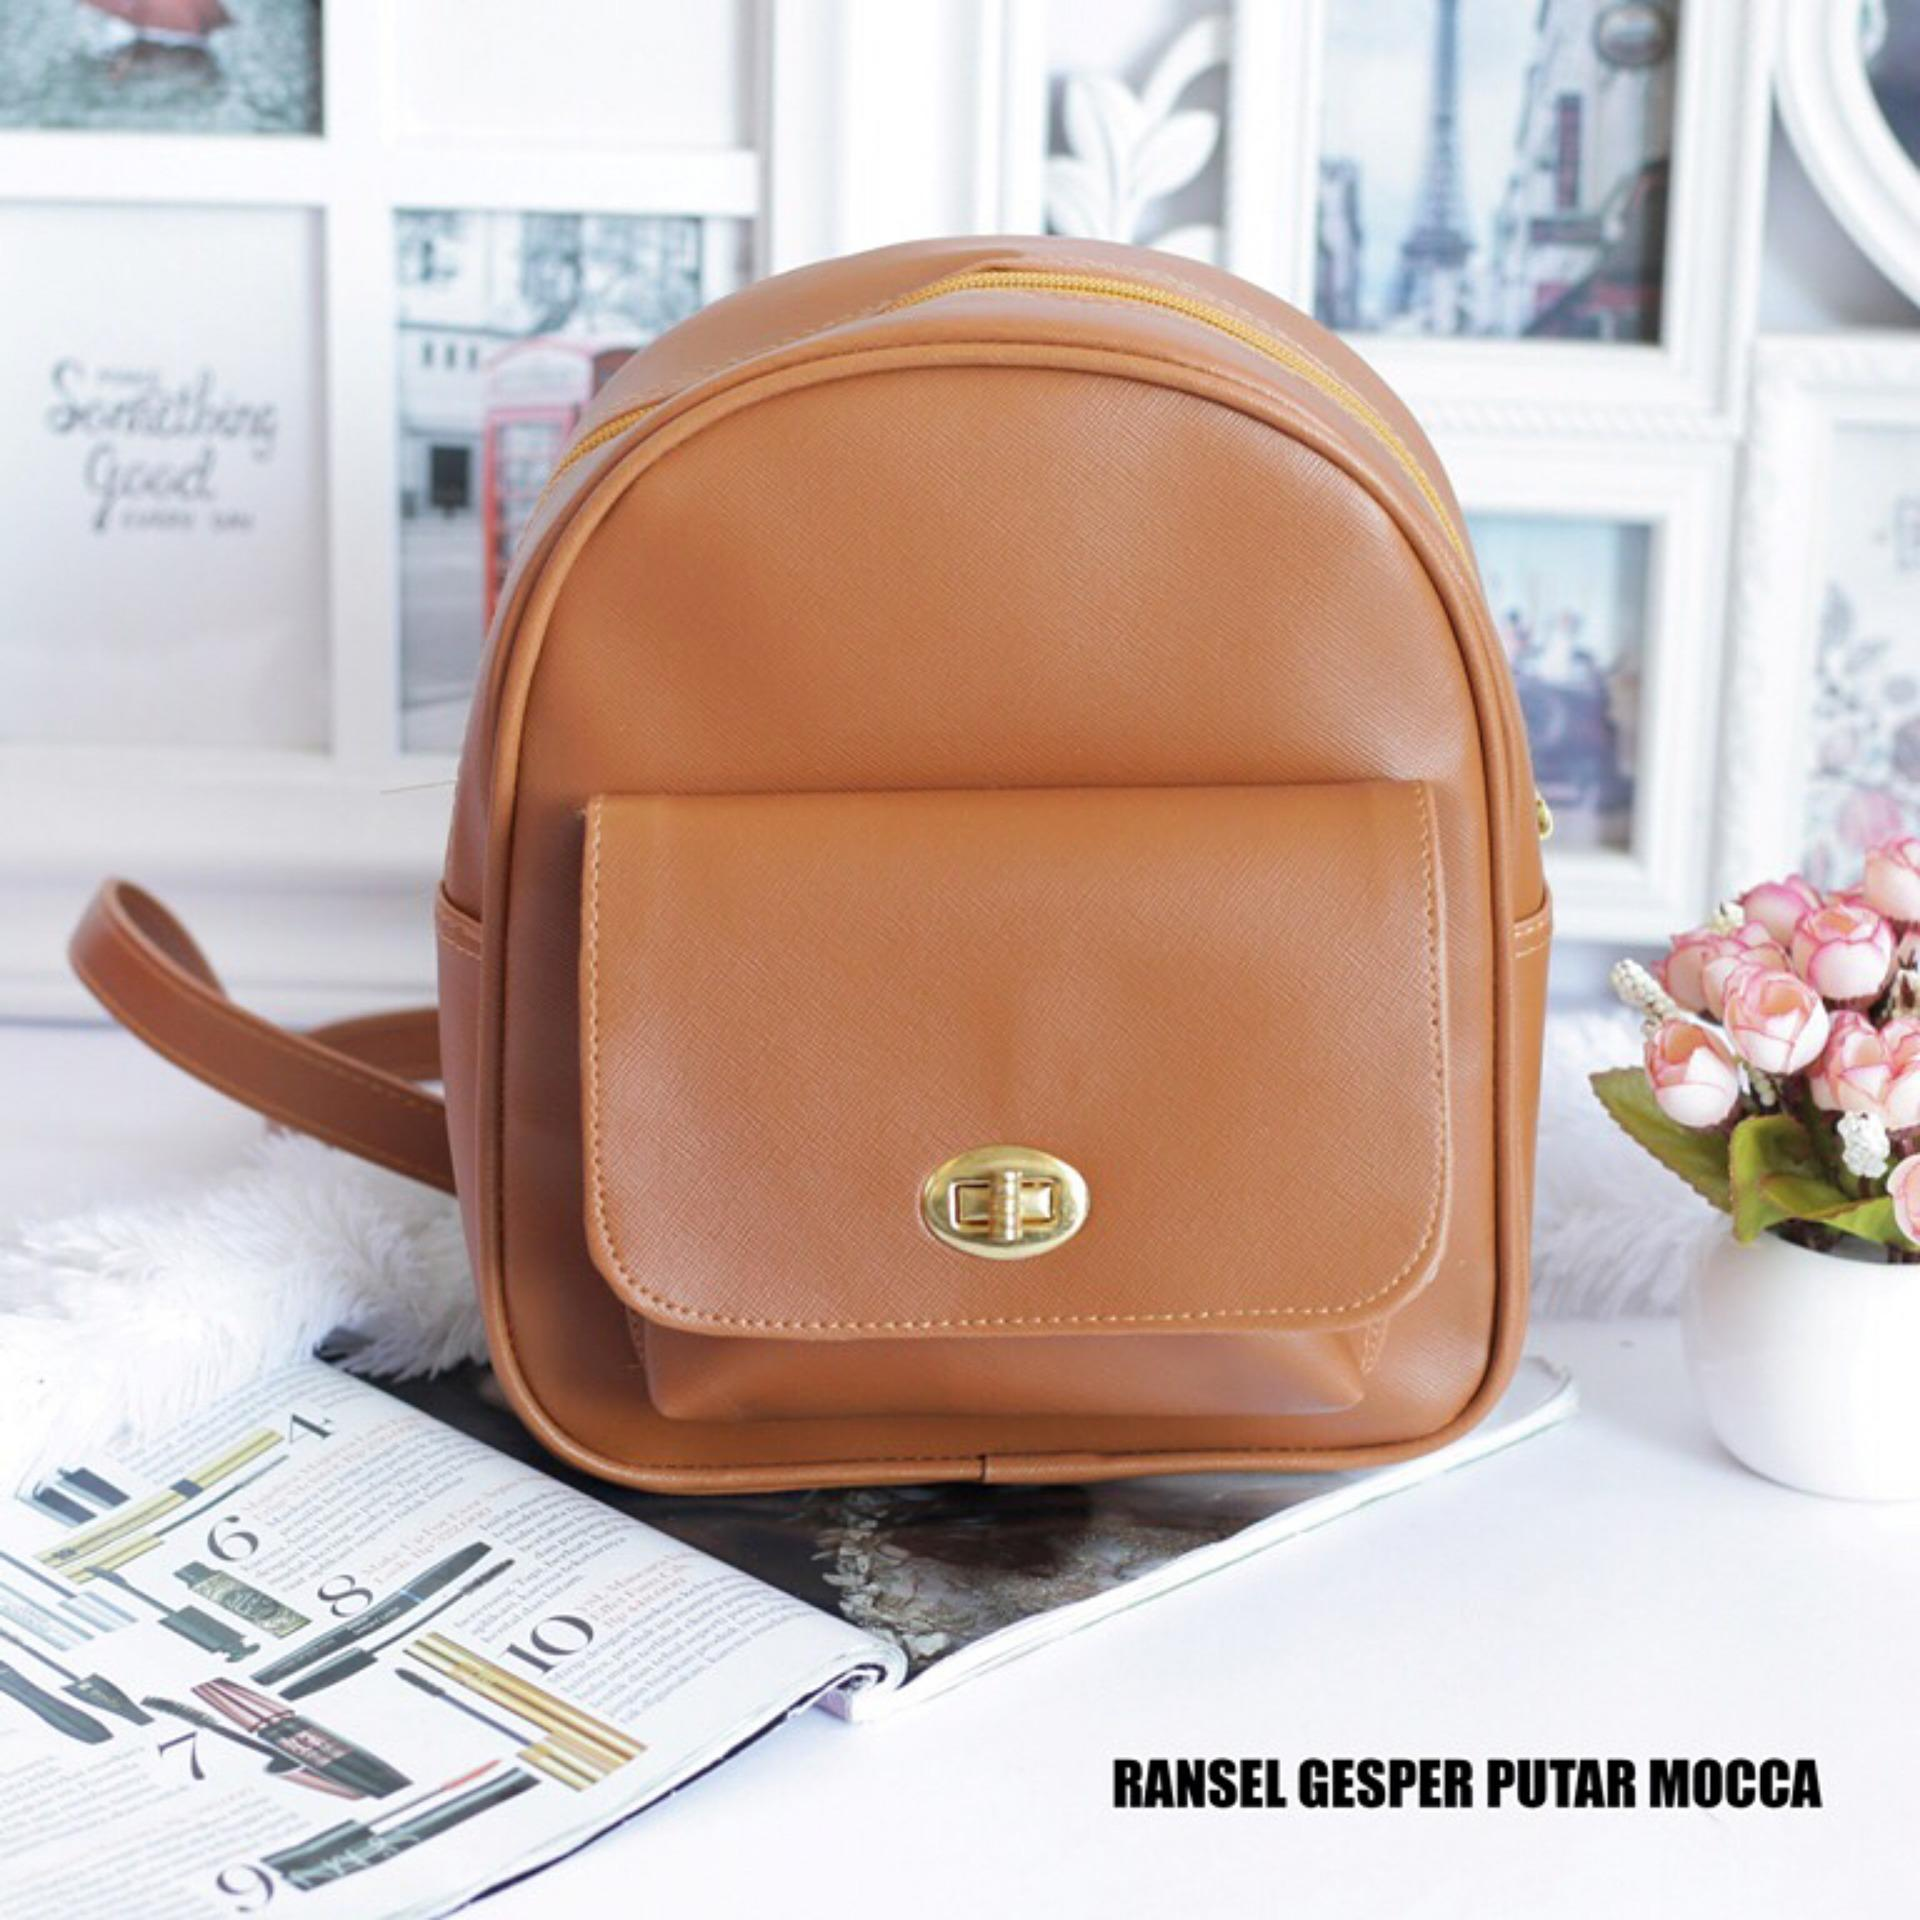 Bag Tas Slempang. Source · EL PIAZA Mini Ransel Kulit Imitasi Gesper .